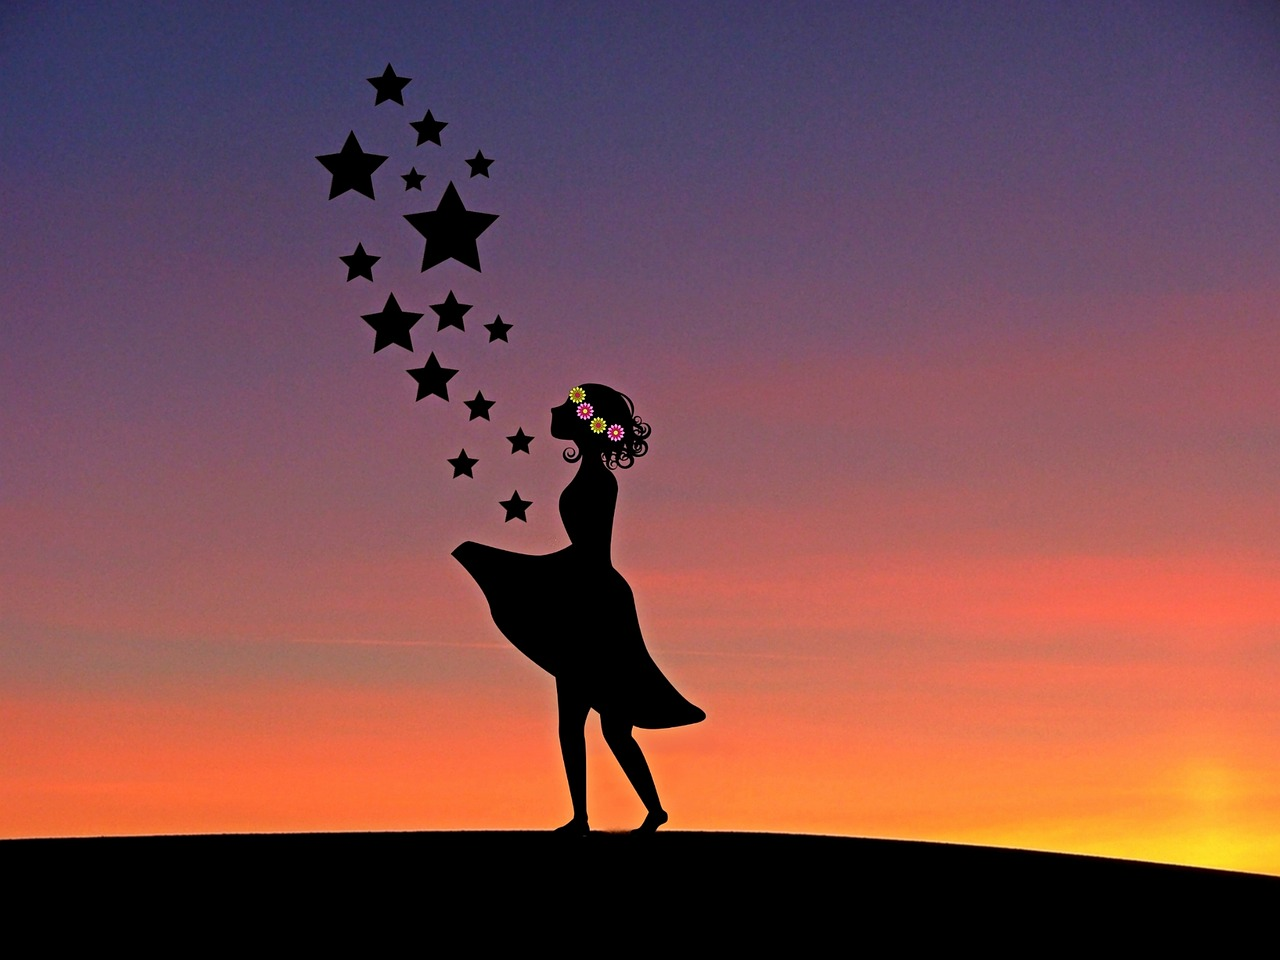 Silhouette of girl with stars rising to the sky